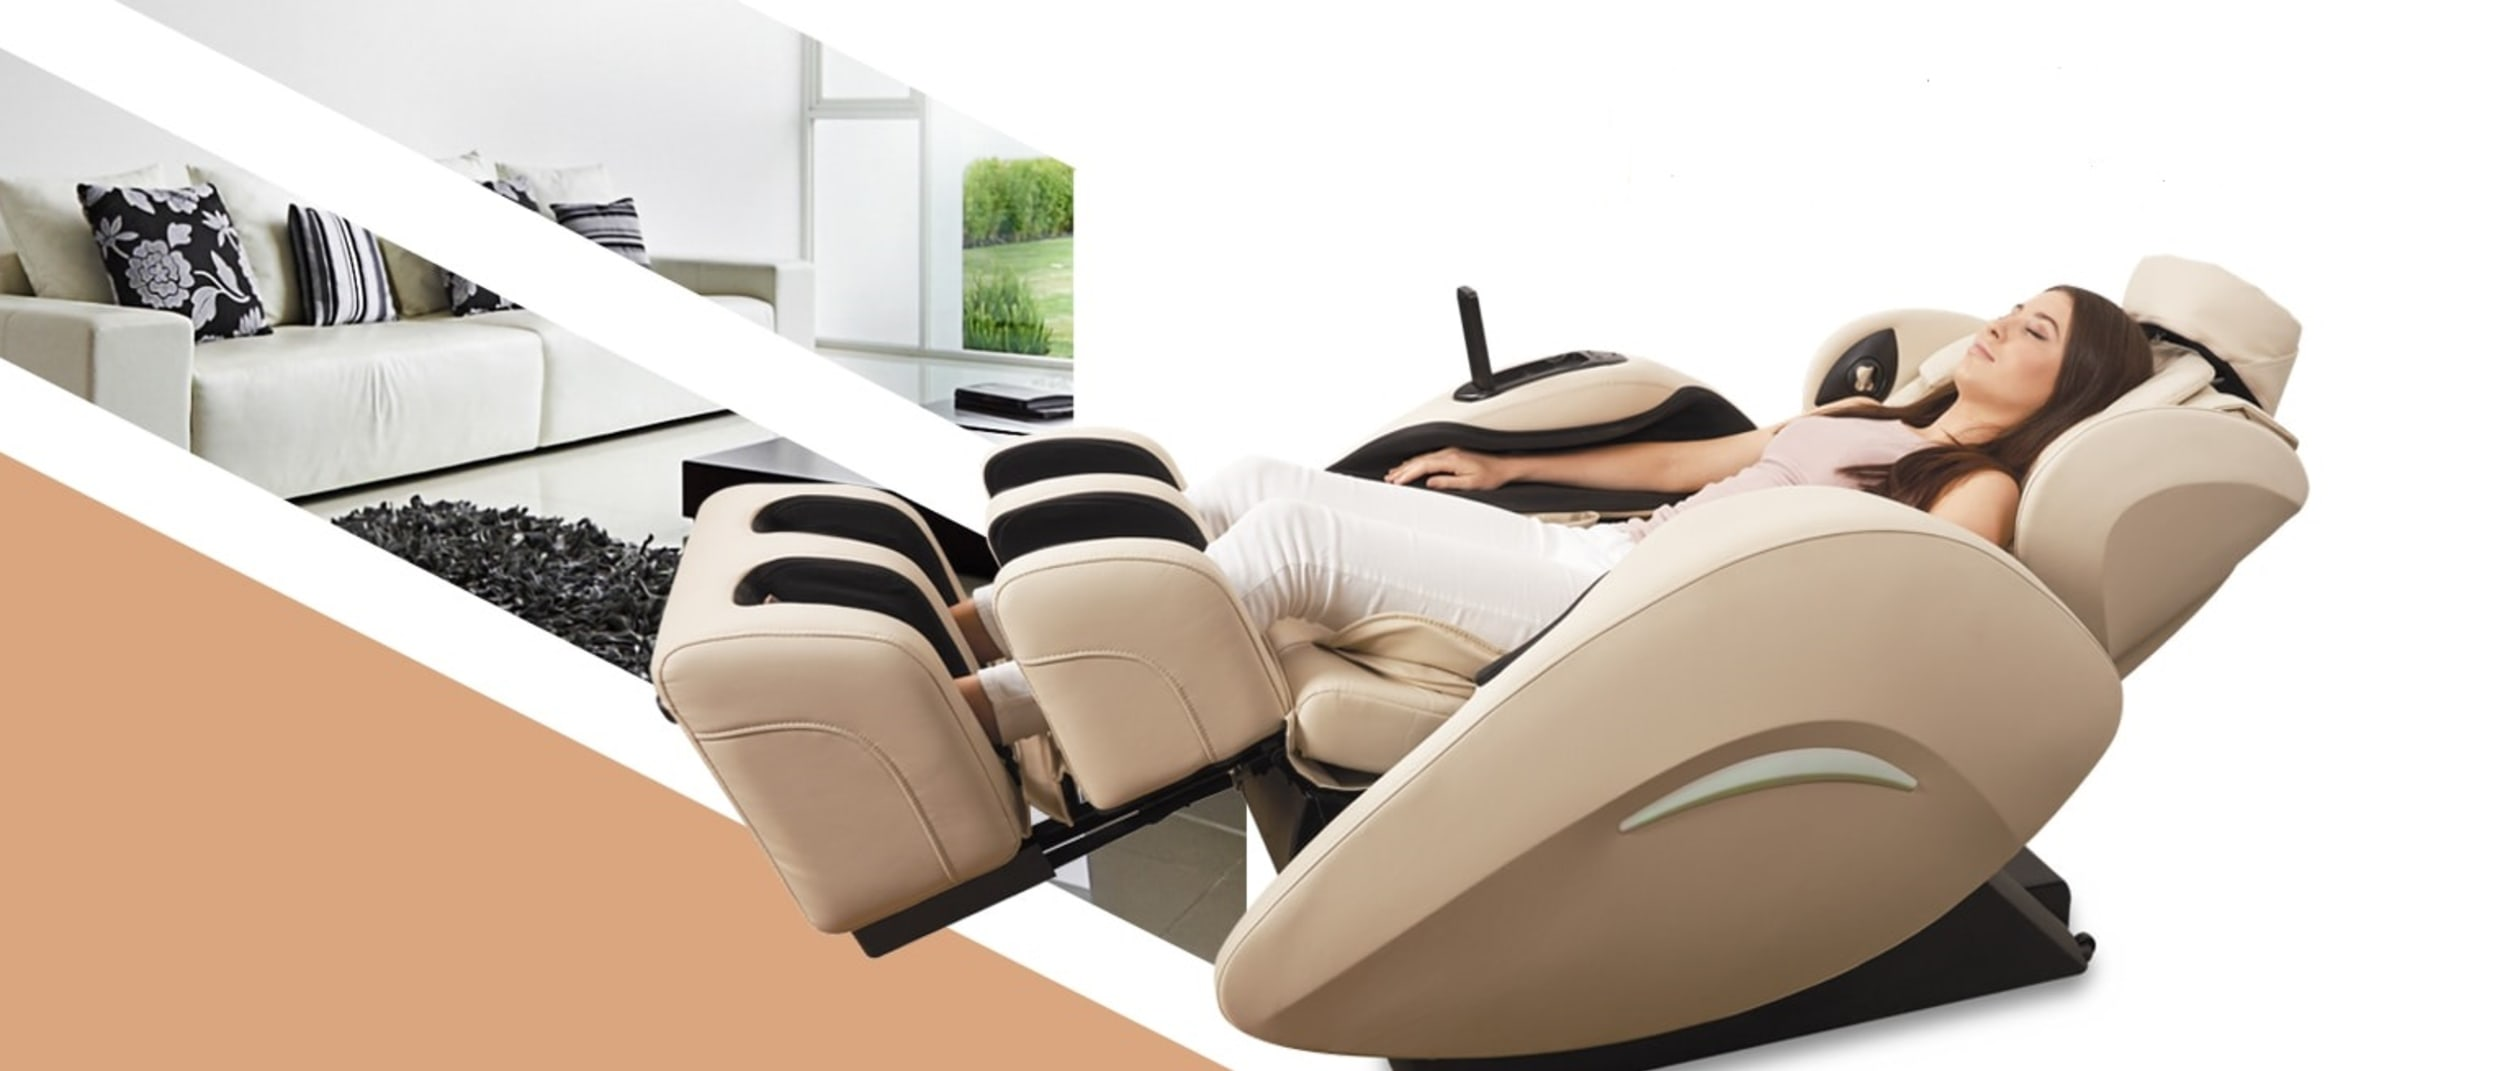 Westfield Plus Offer: inTouch Massage Chairs - Free Delivery